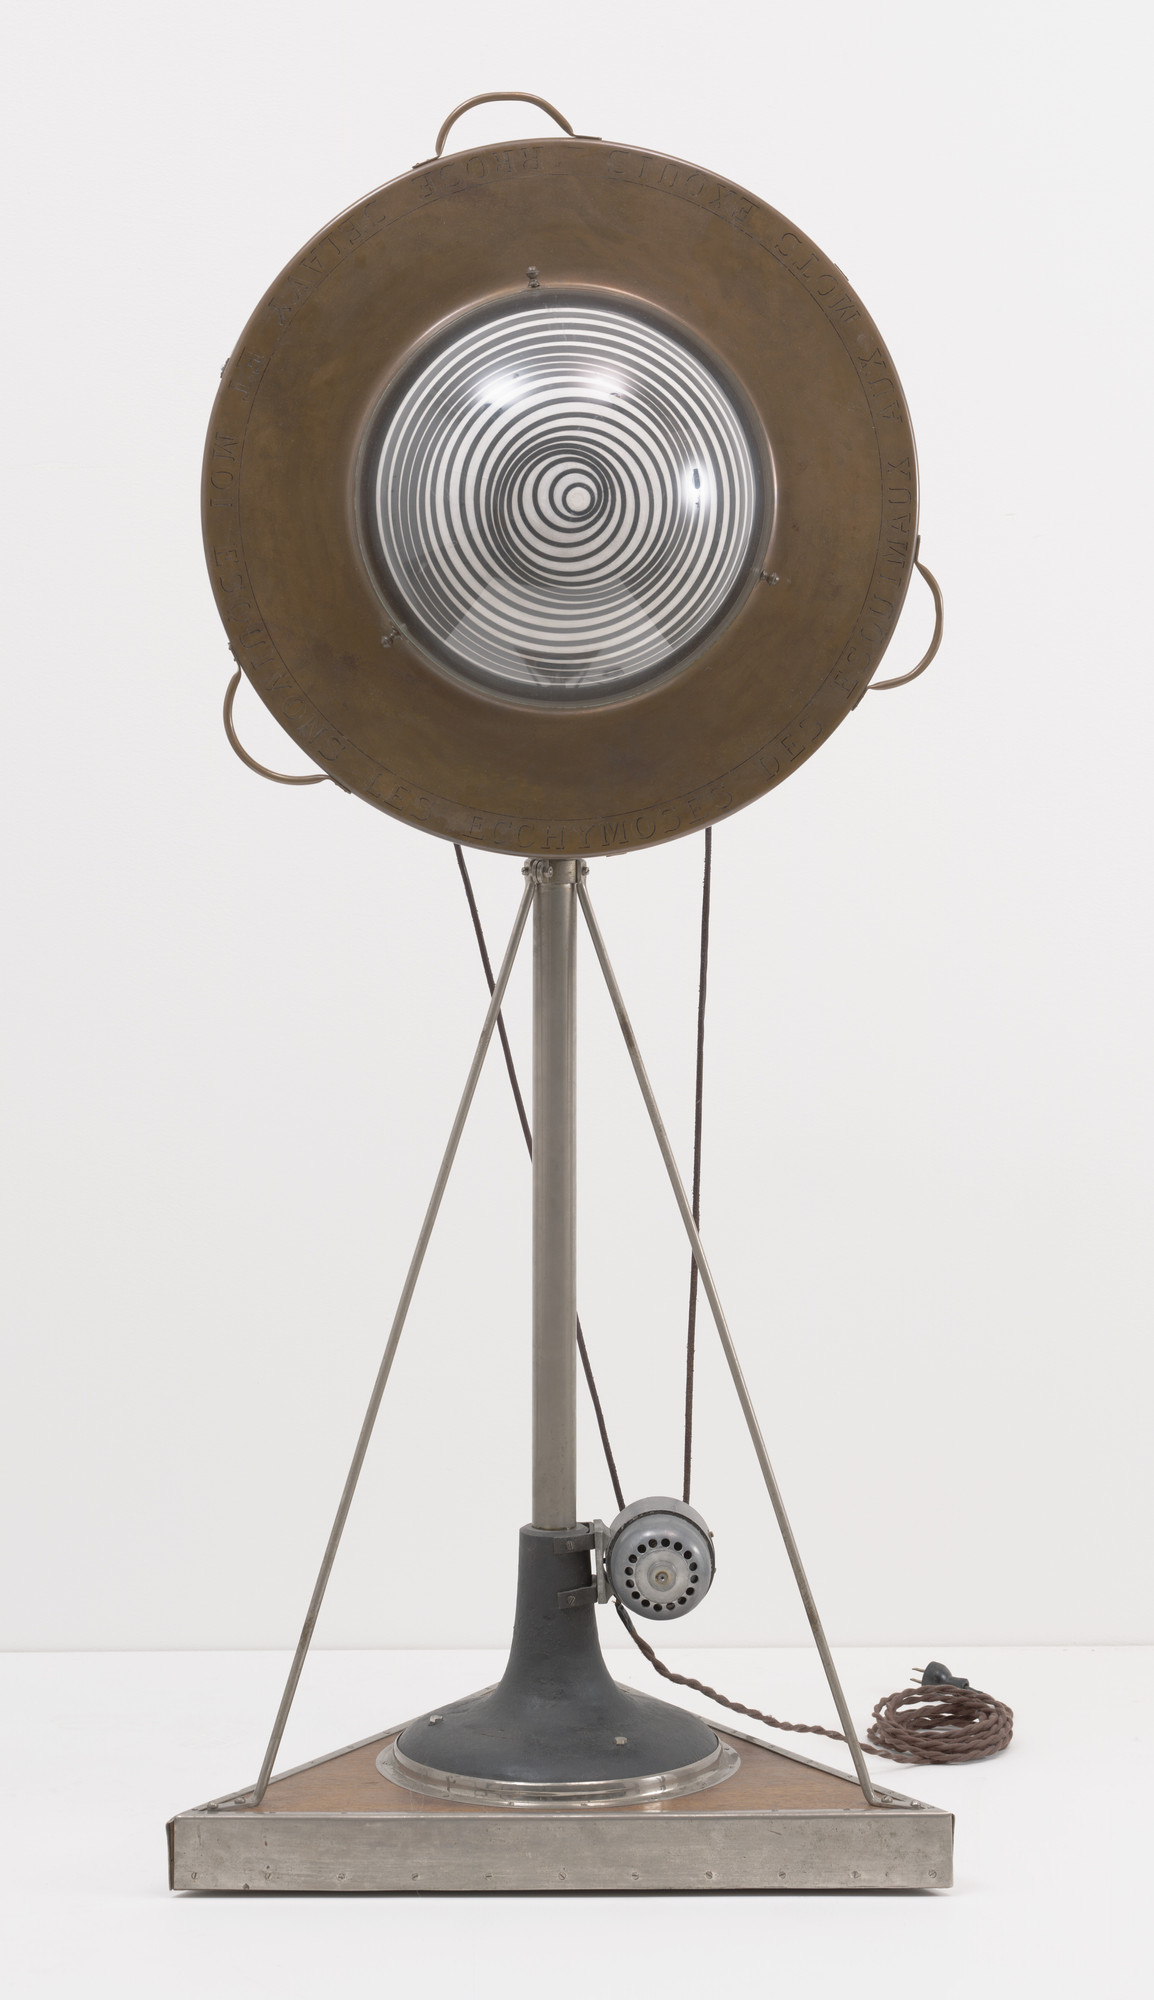 Marcel Duchamp. Rotary Demisphere (Precision Optics). Paris, 1925